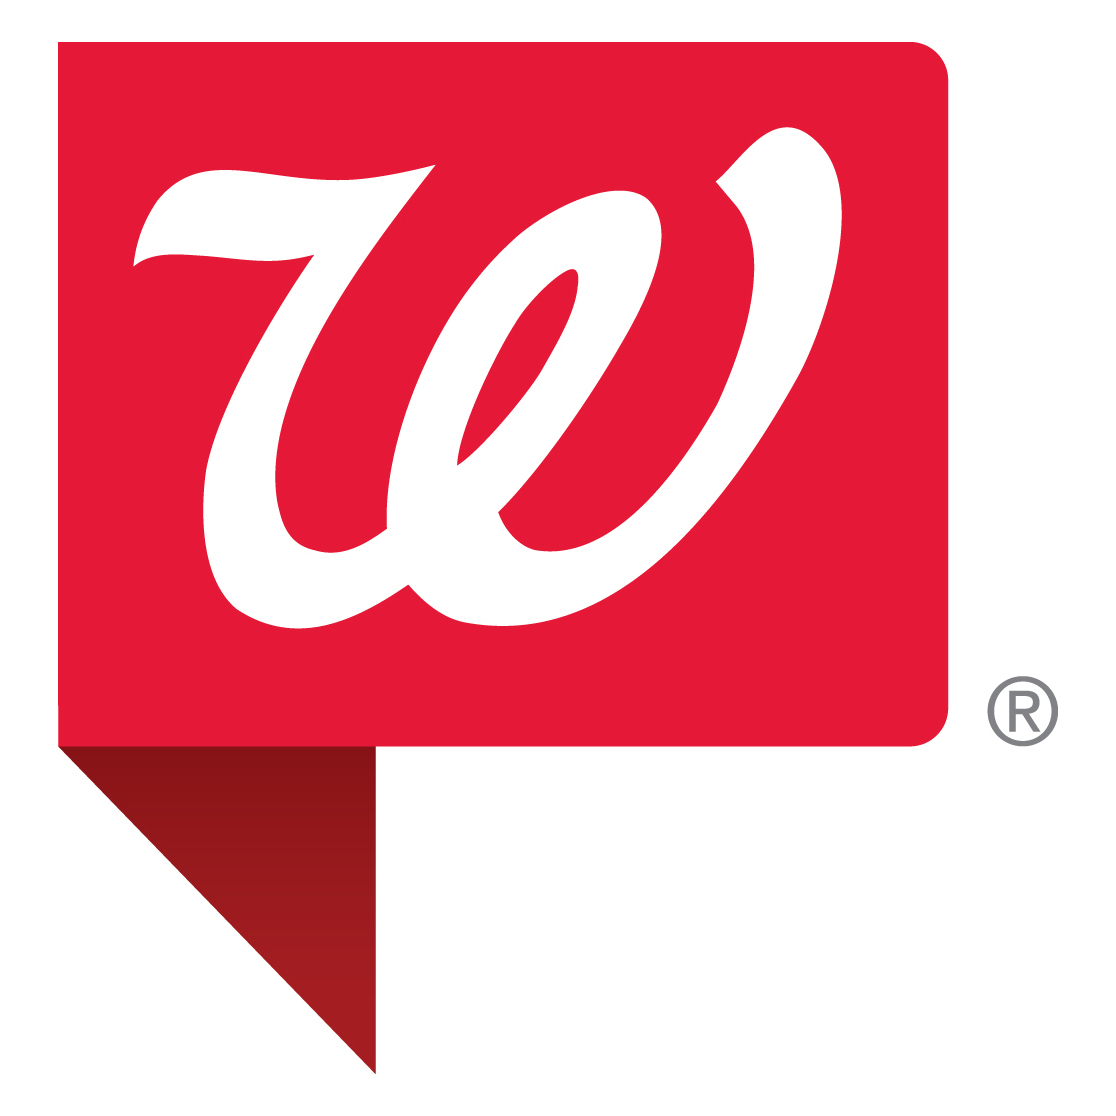 Walgreens Pharmacy at Harris Methodist Fort Worth Hospital - Fort Worth, TX - Pharmacist